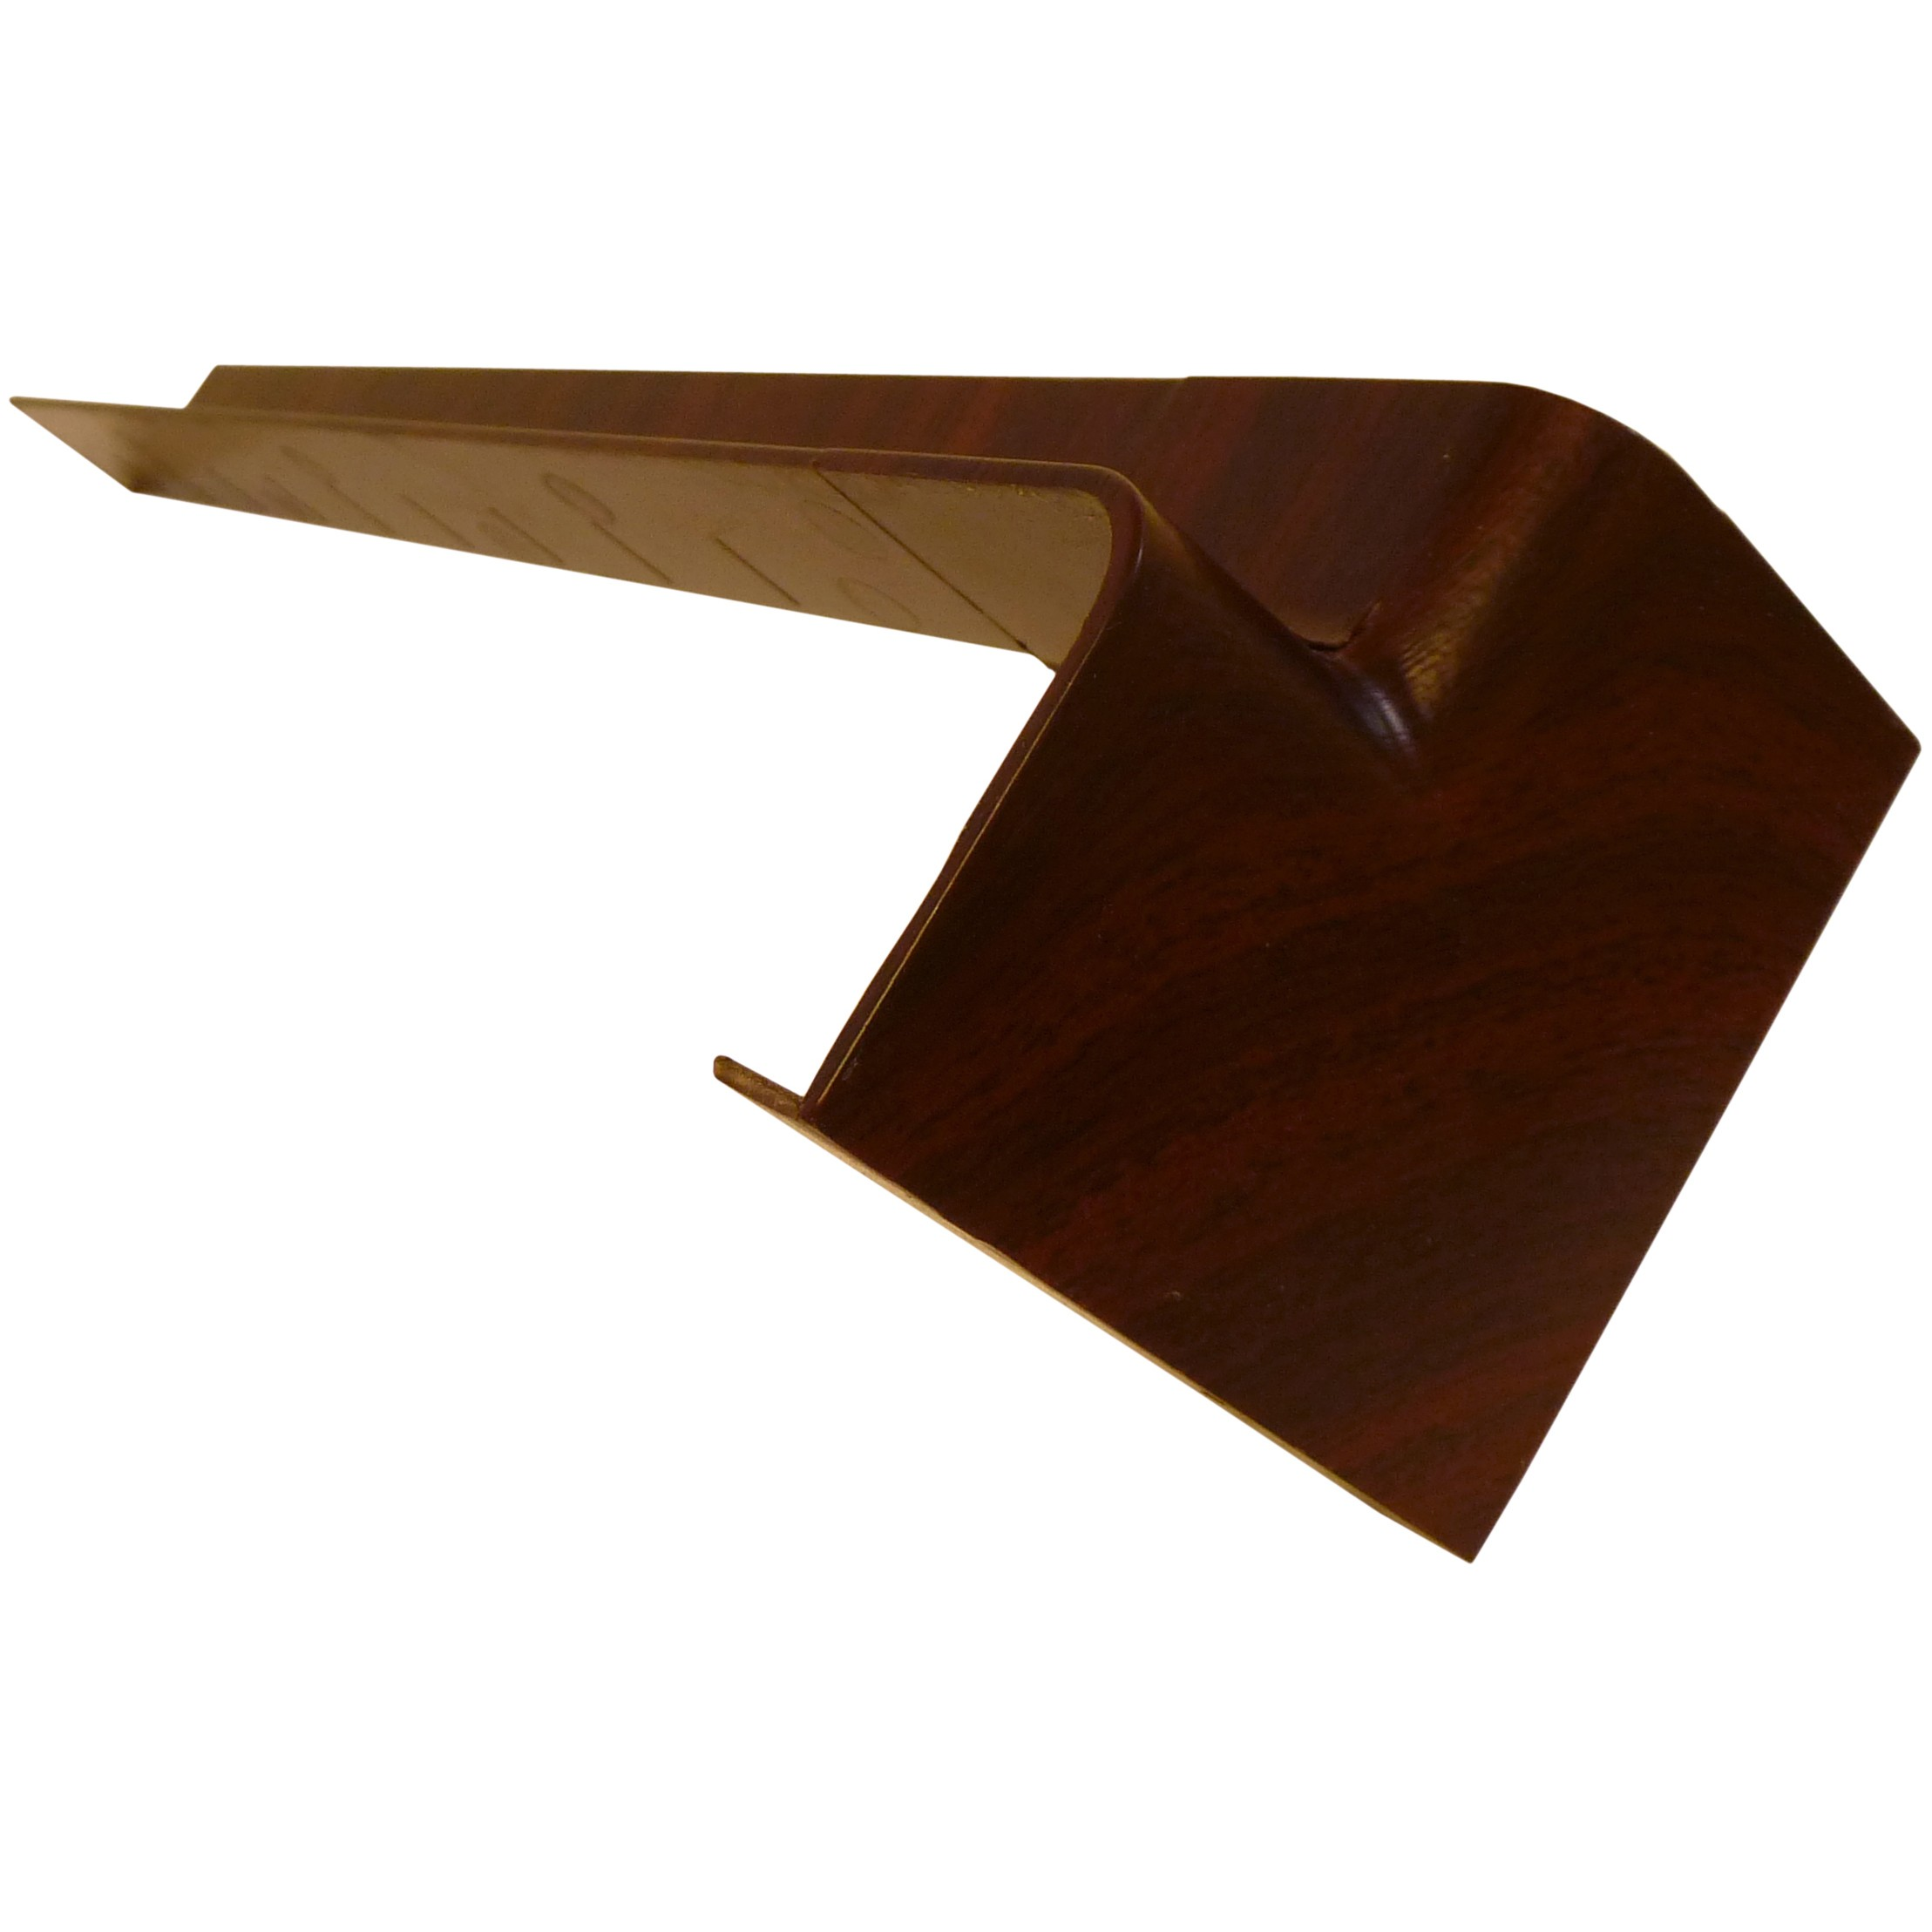 Freefoam Plain Fascia Board Internal Corner (Single) - Woodgrain Mahogany